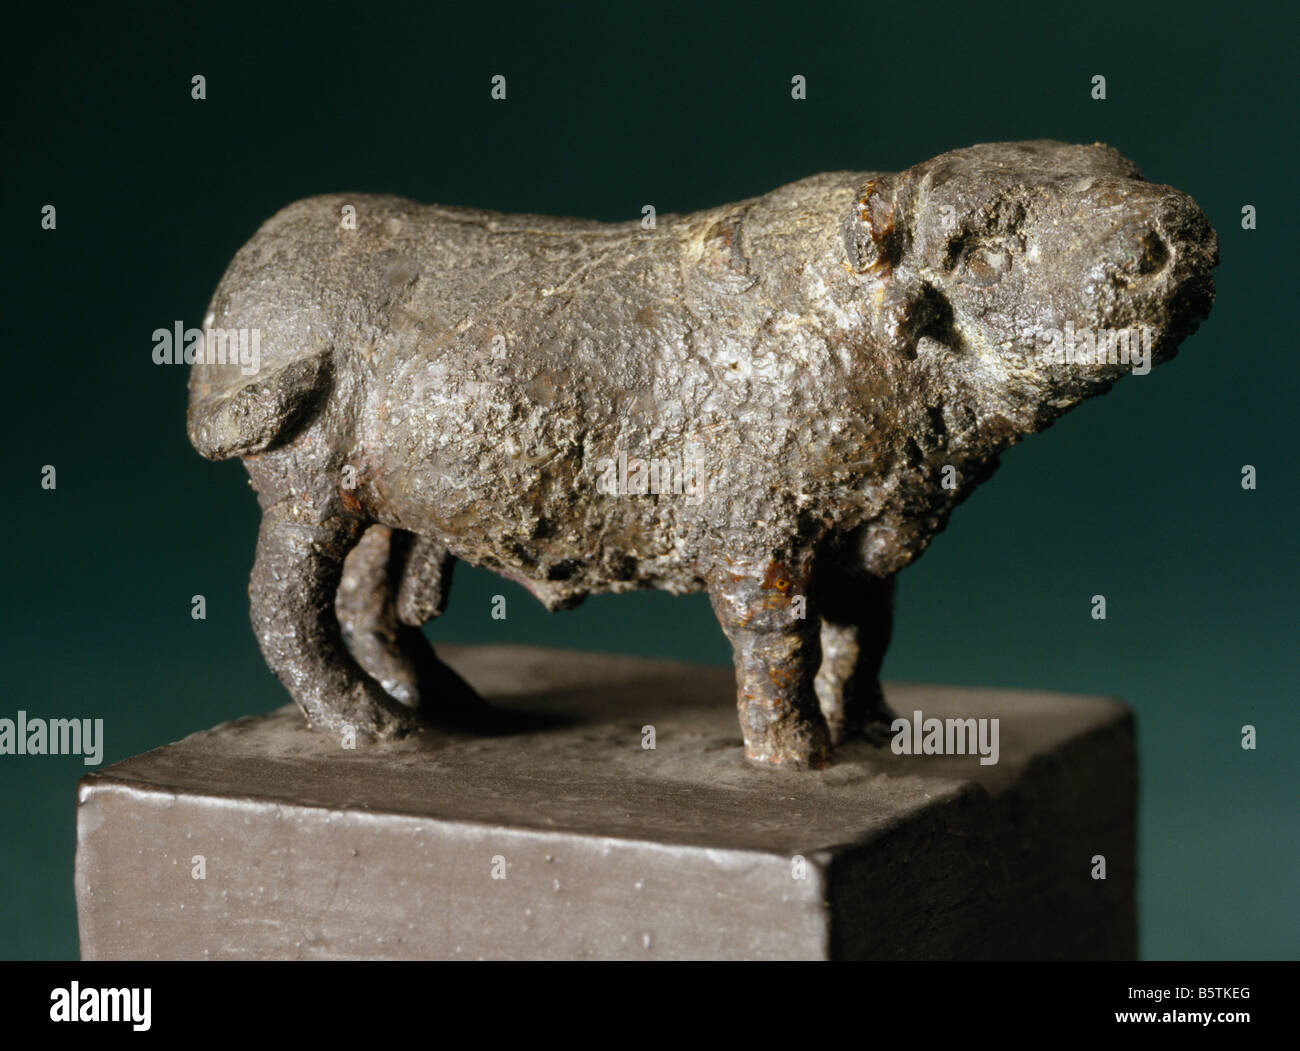 Buffalo in bronze Harappan c. 2300-1750bc from Mohan Jodaro Sind Pakistan. National Museum of New Delhi India 3319/197 - Stock Image